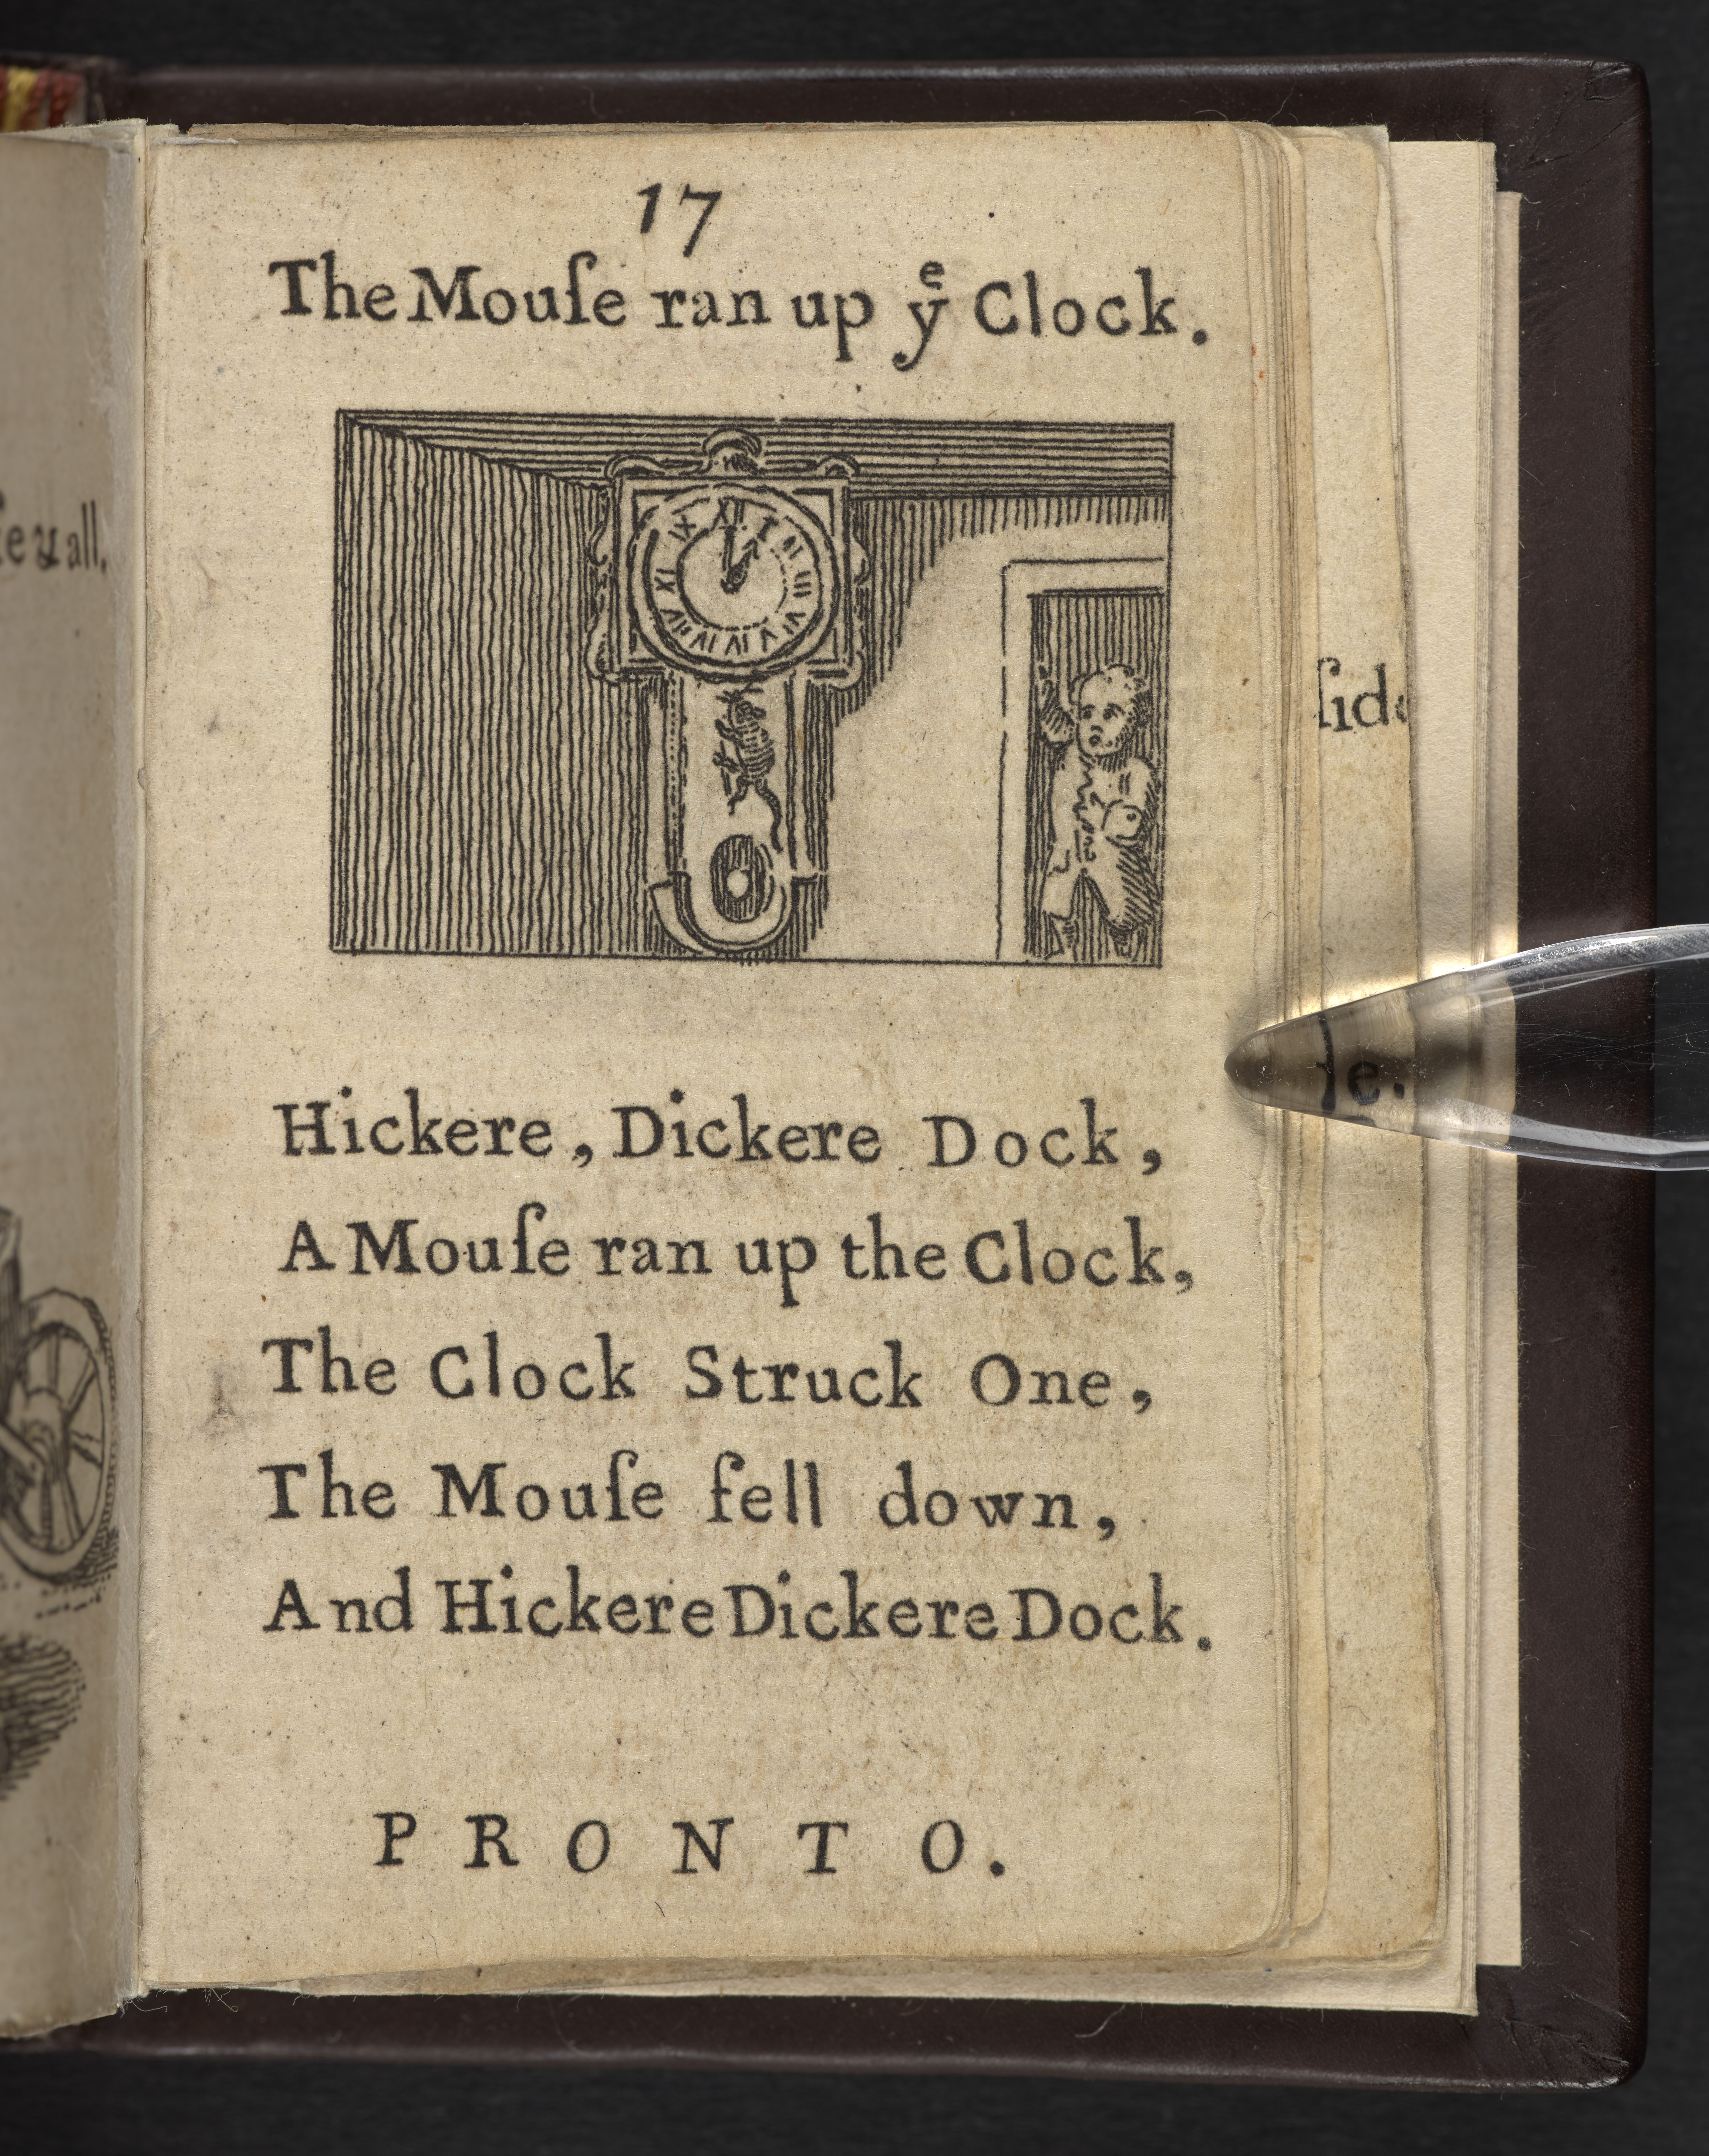 Page from a tiny book with a rhyme printed on it and a picture of a clock and a mouse.